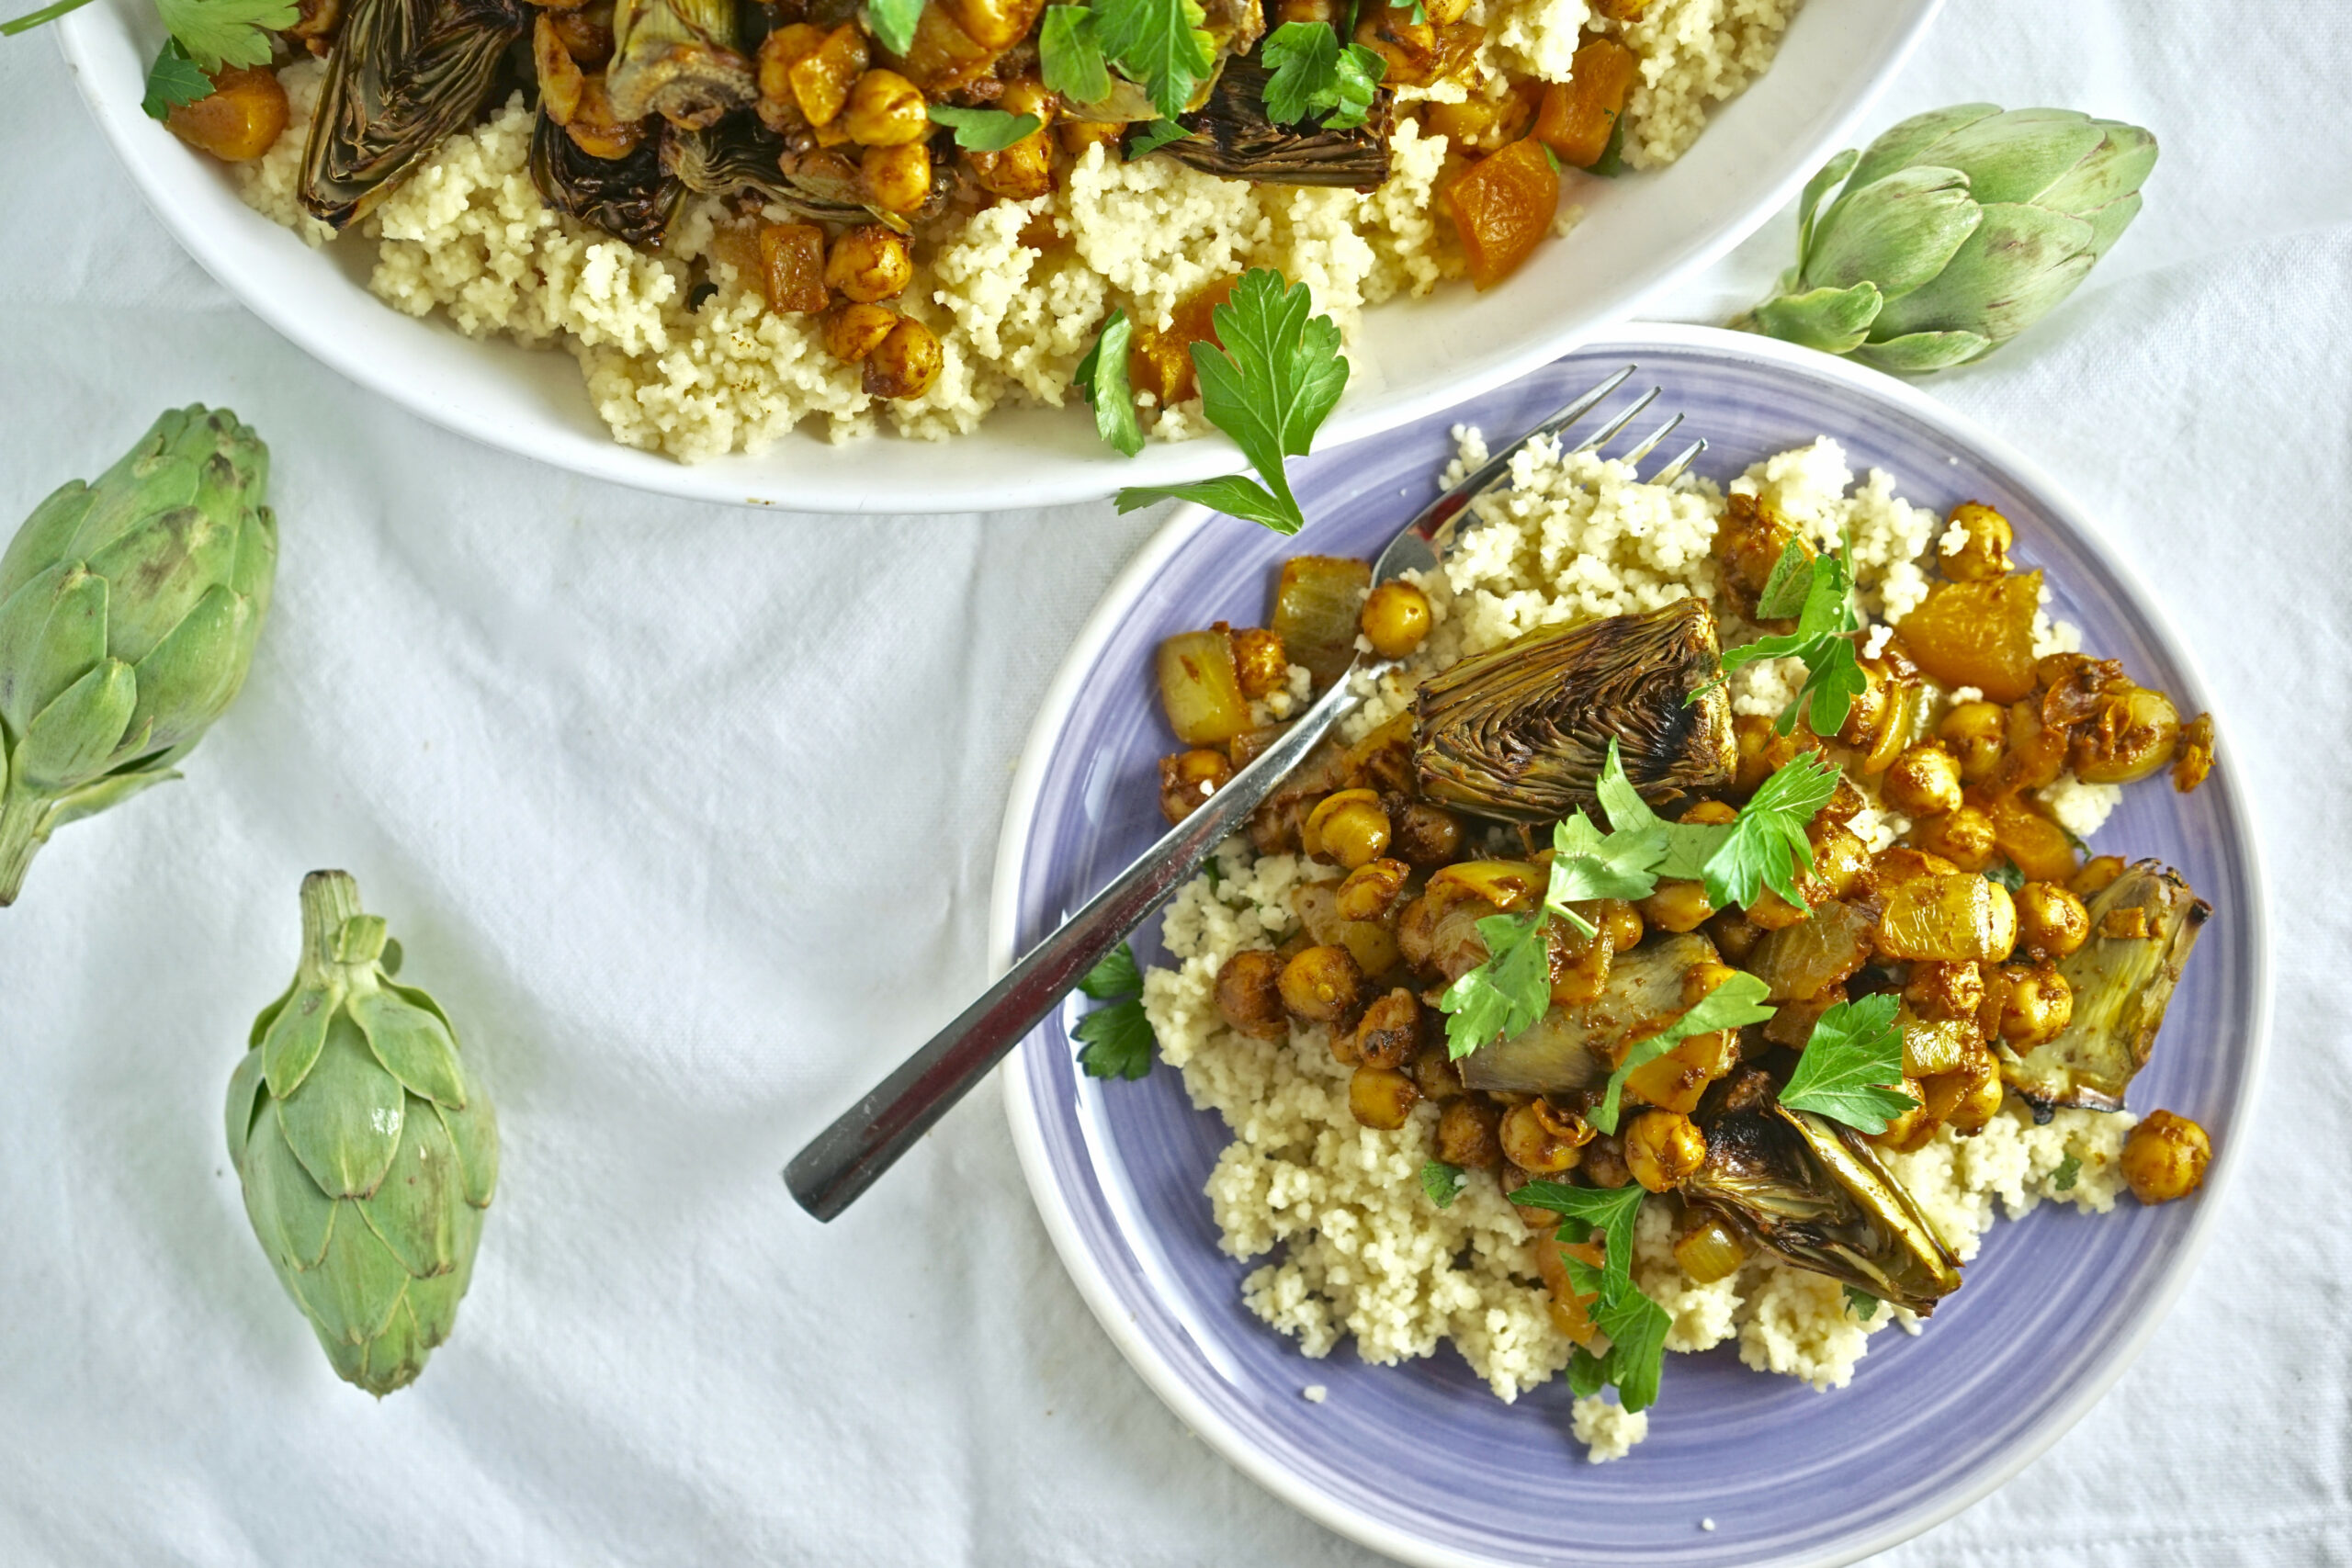 Tagine With Grilled Artichokes, Chickpeas, And Preserved Lemon - Vegetarian Recipes Using Preserved Lemons